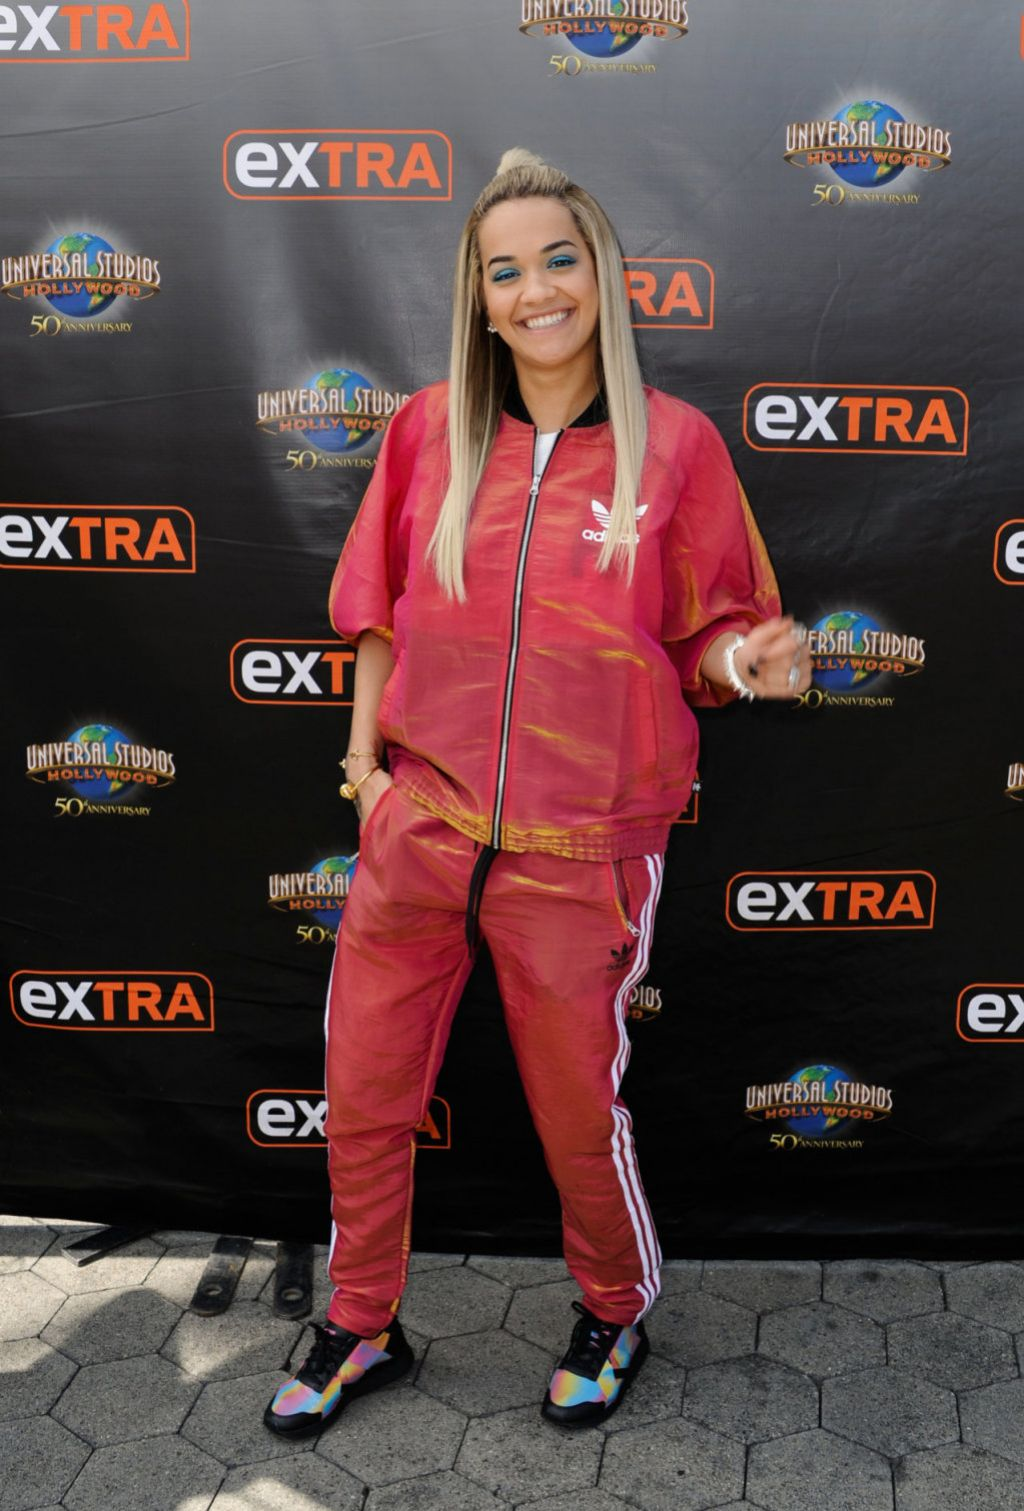 rita-ora-visits-extra-at-universal-studios-in-hollywood-august-2015_1